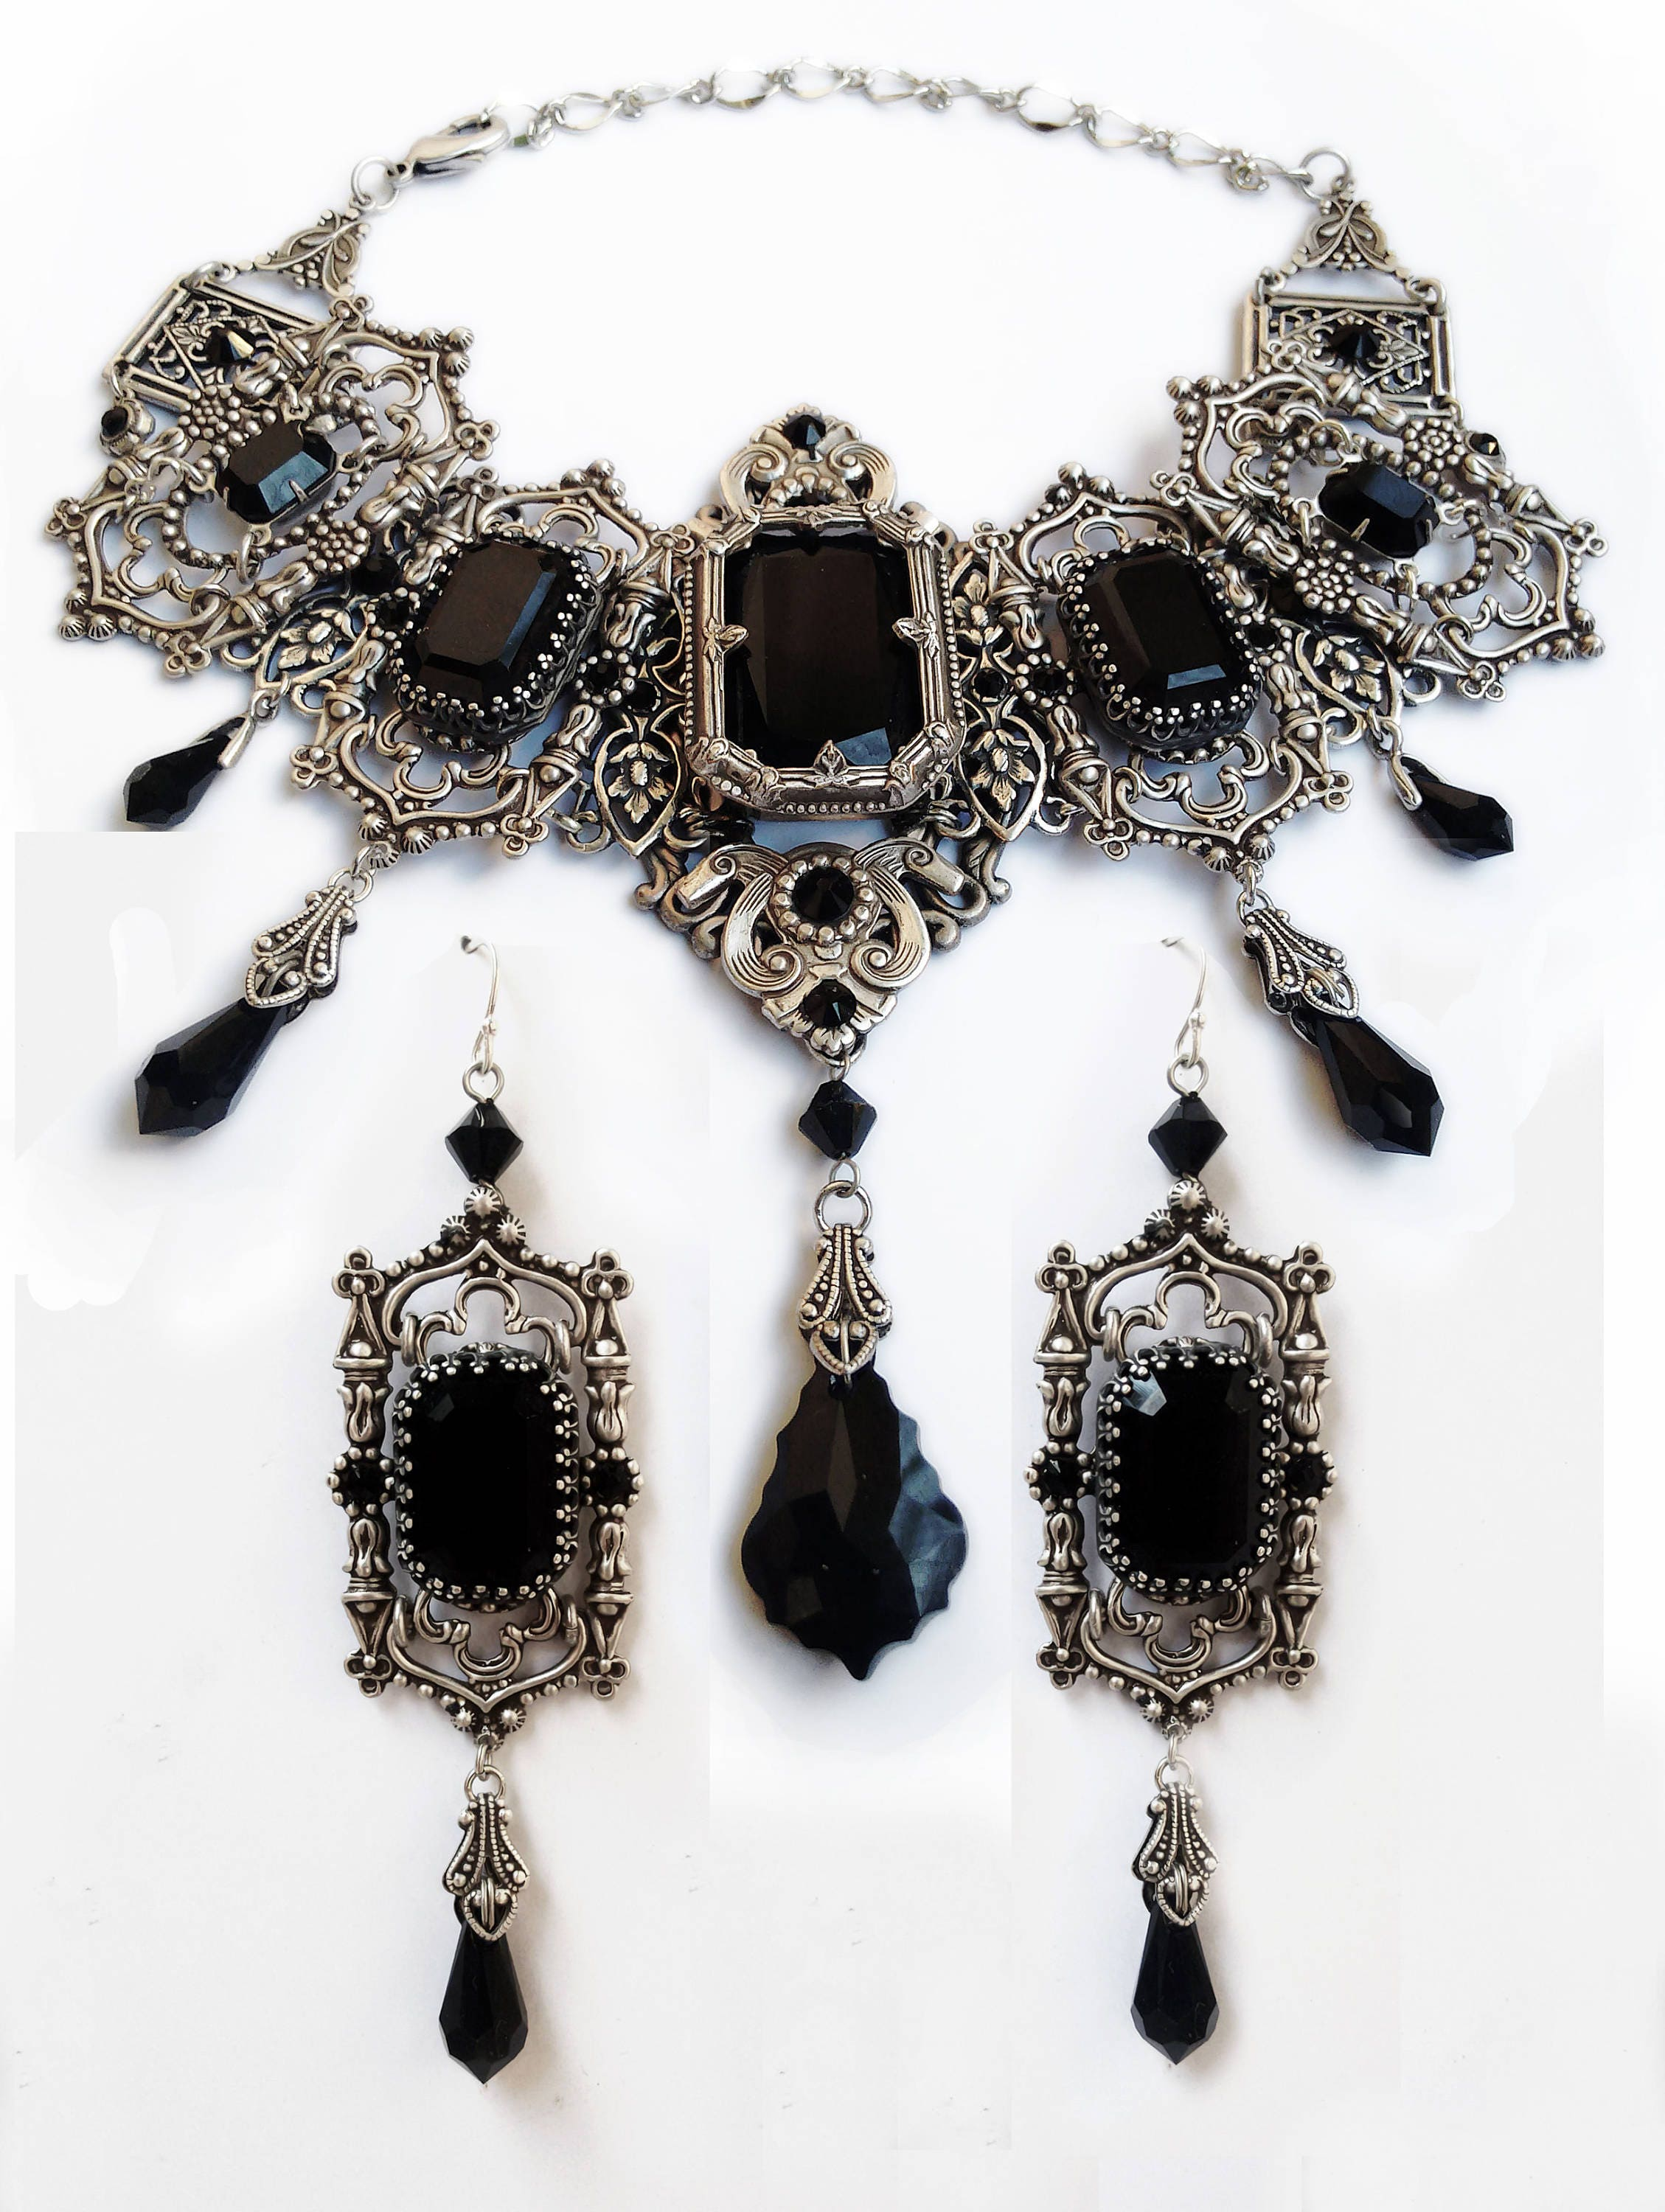 Victorian Gothic Jewelry Vintage Style Bridal Jewelry by Aranwen